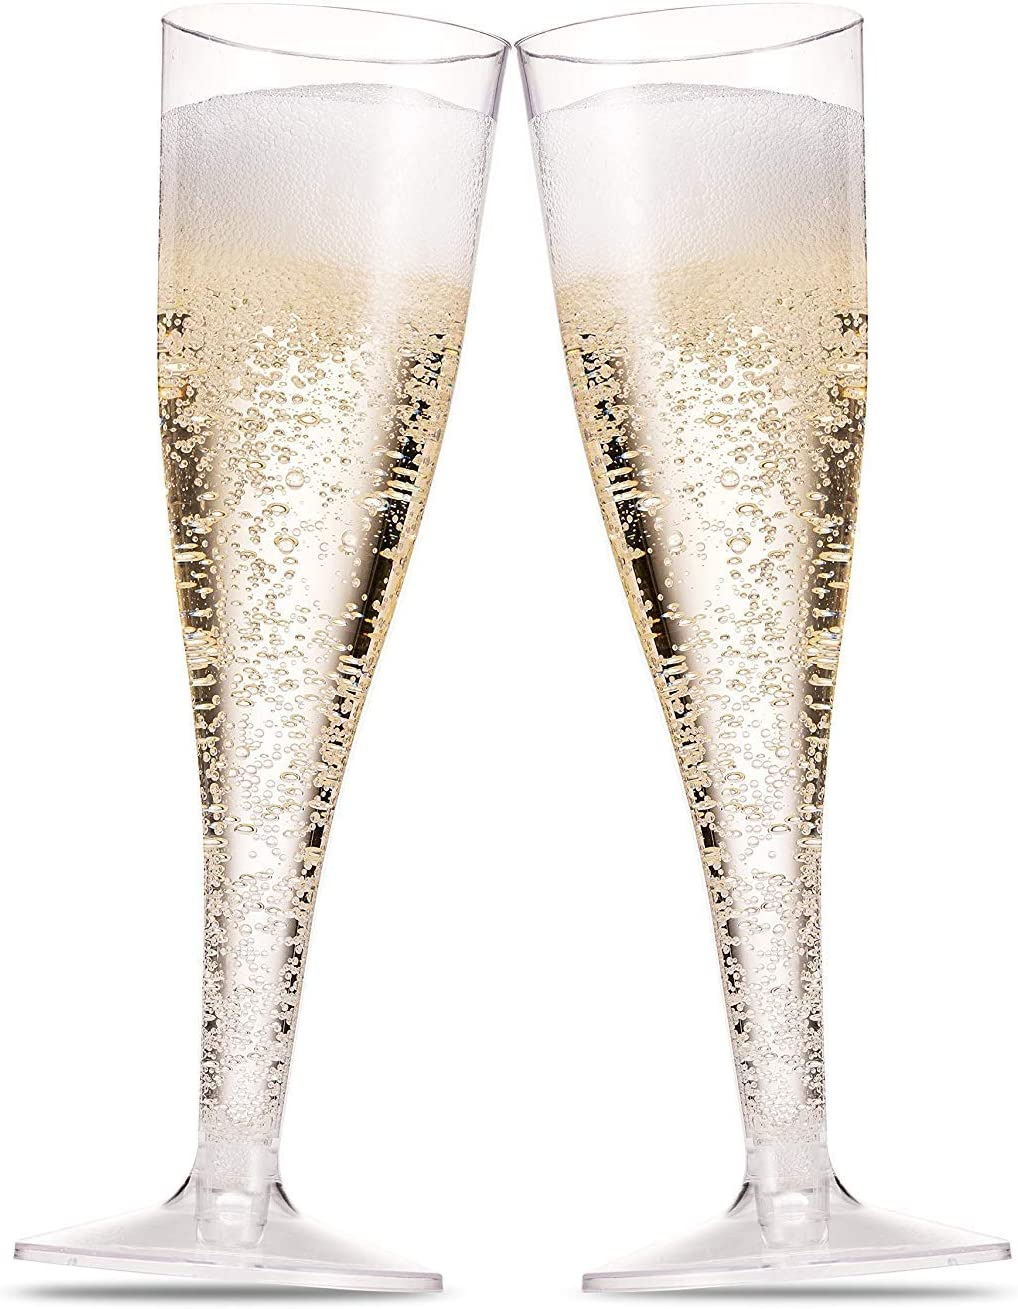 Amazon Com 50 Plastic Champagne Flutes 5 Oz Clear Plastic Toasting Glasses Disposable Wedding Party Cocktail Cups Champagne Glasses